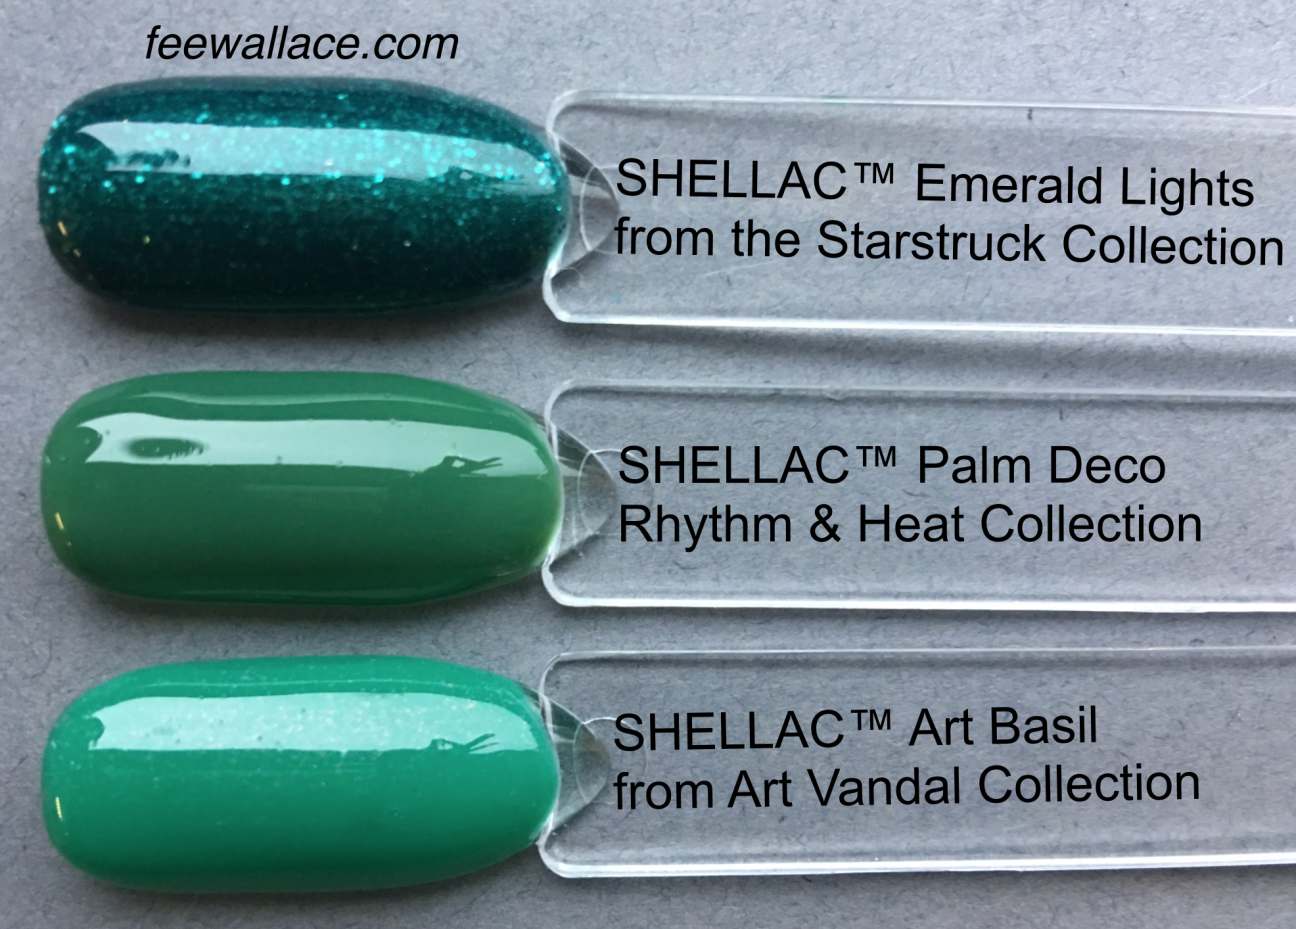 color comparison shot for shellac palm deco by fee wallace